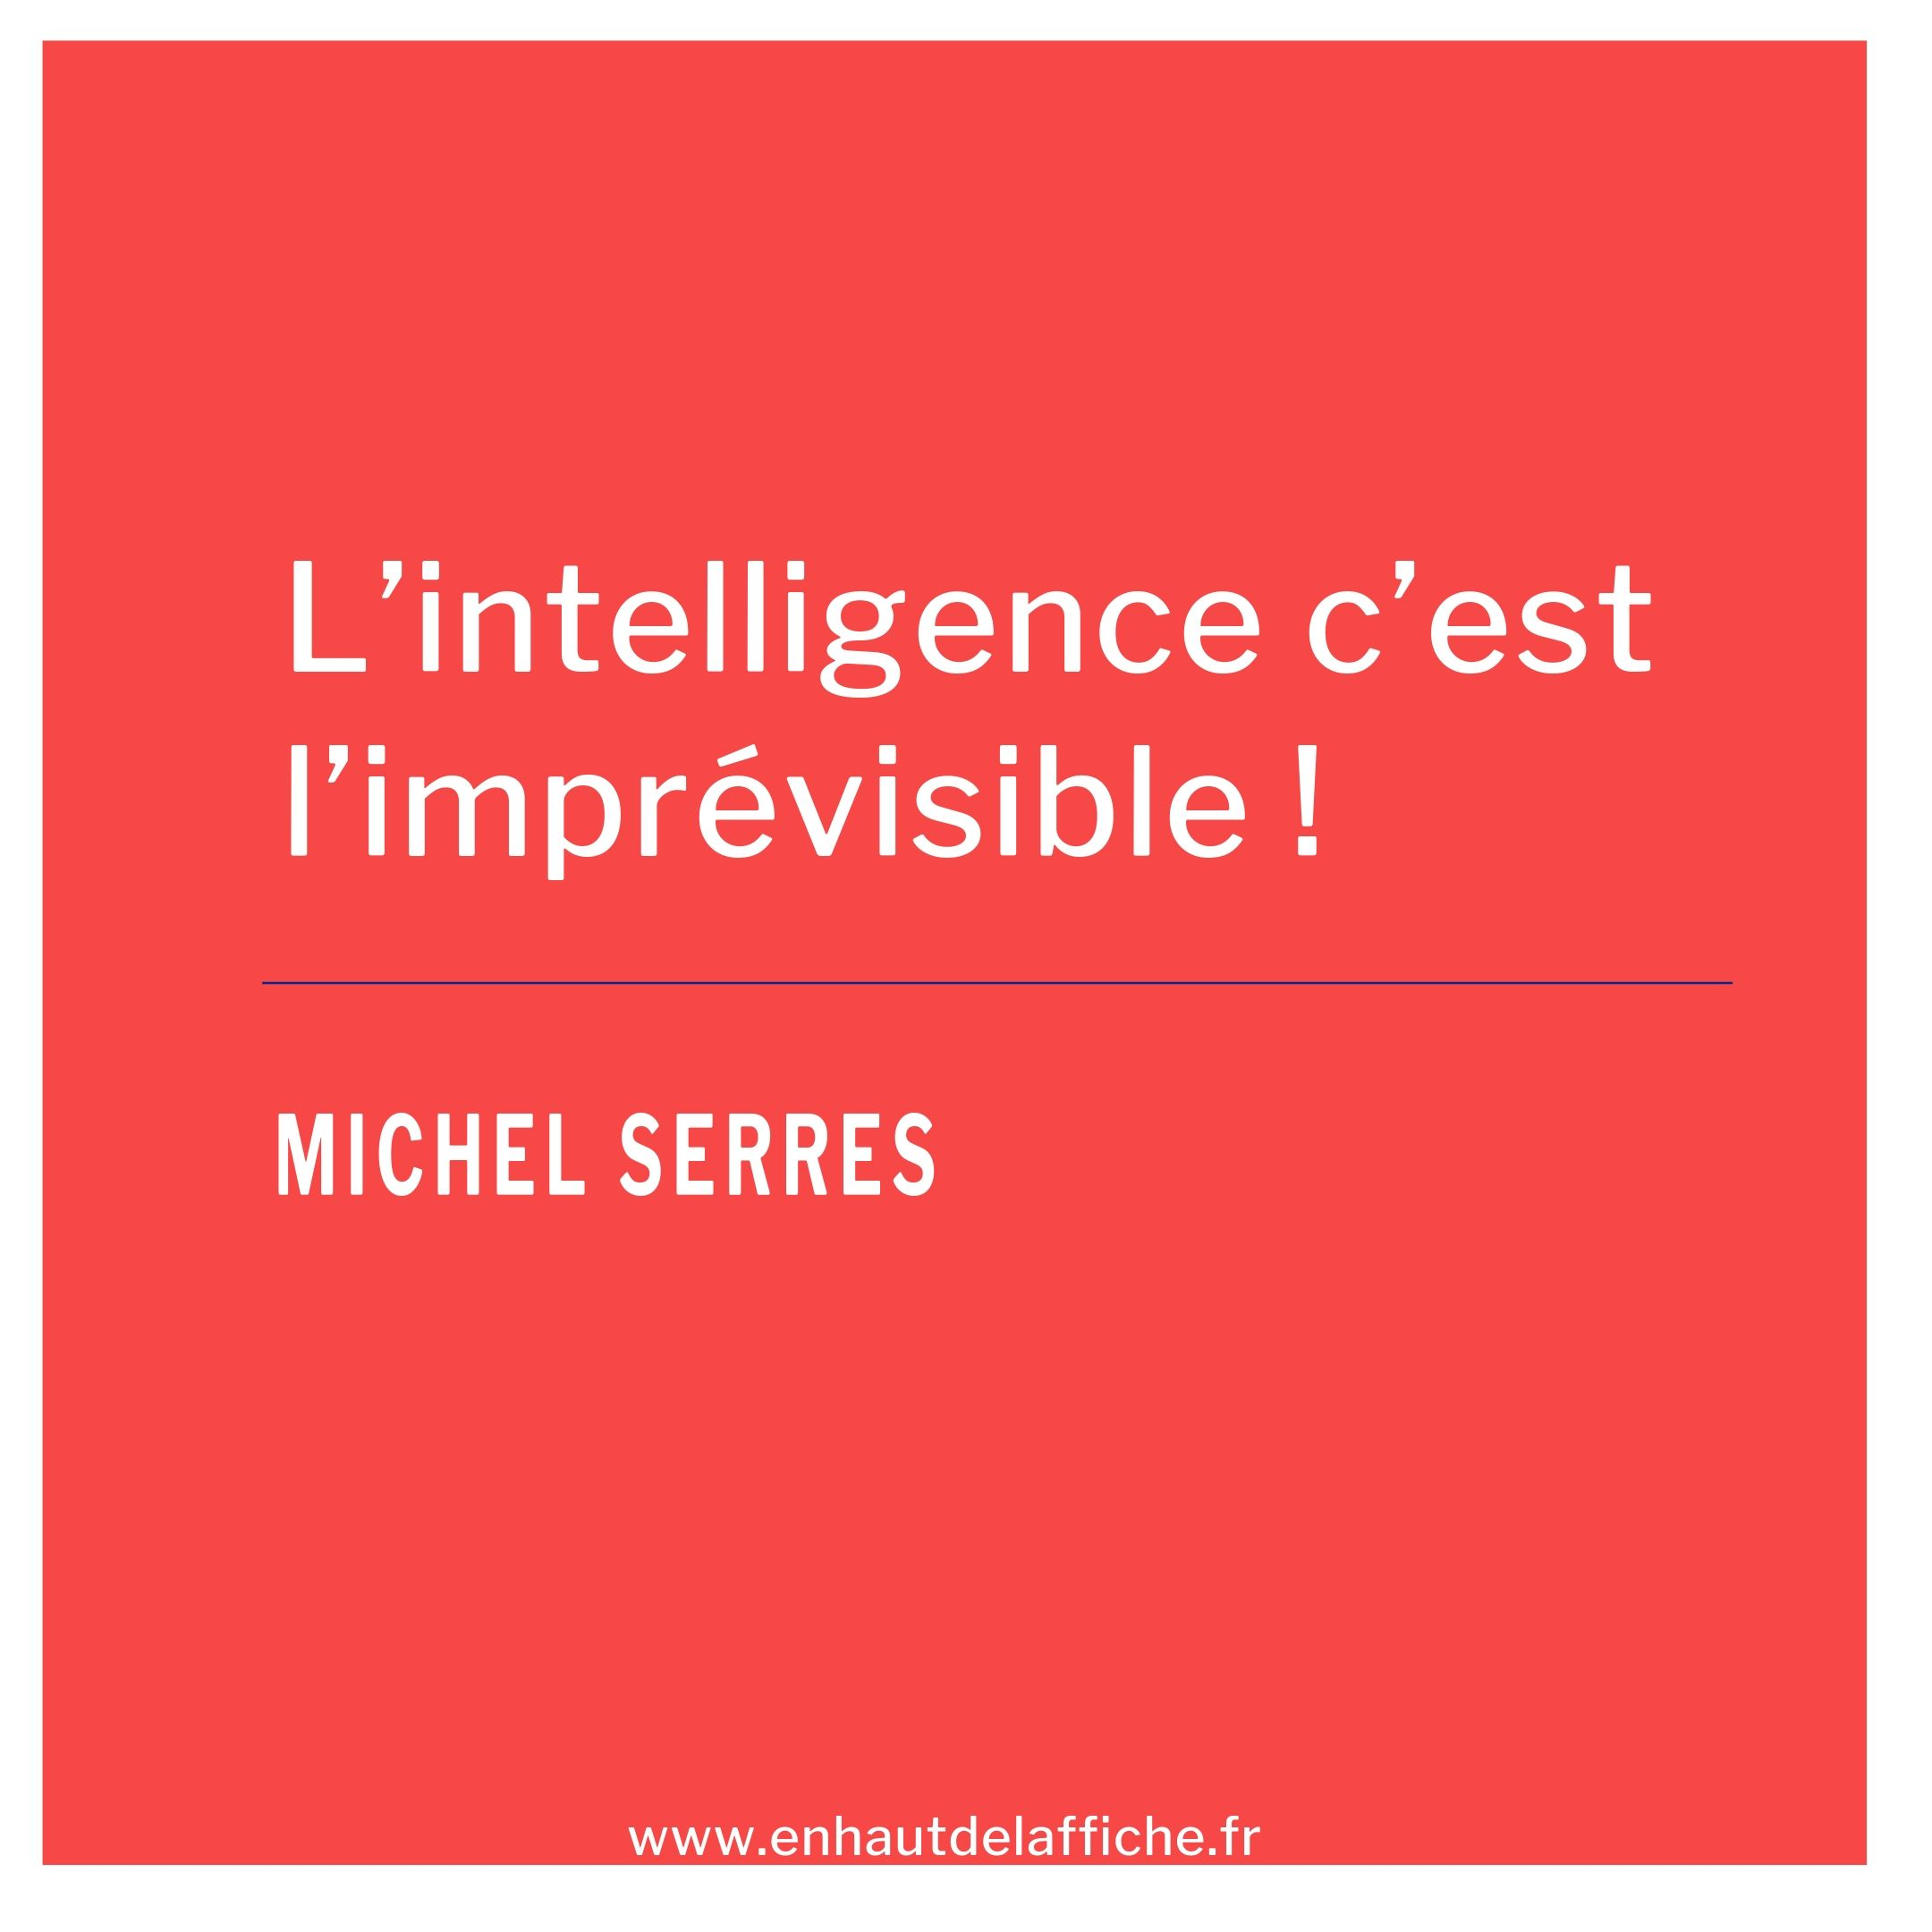 citation Michel serres